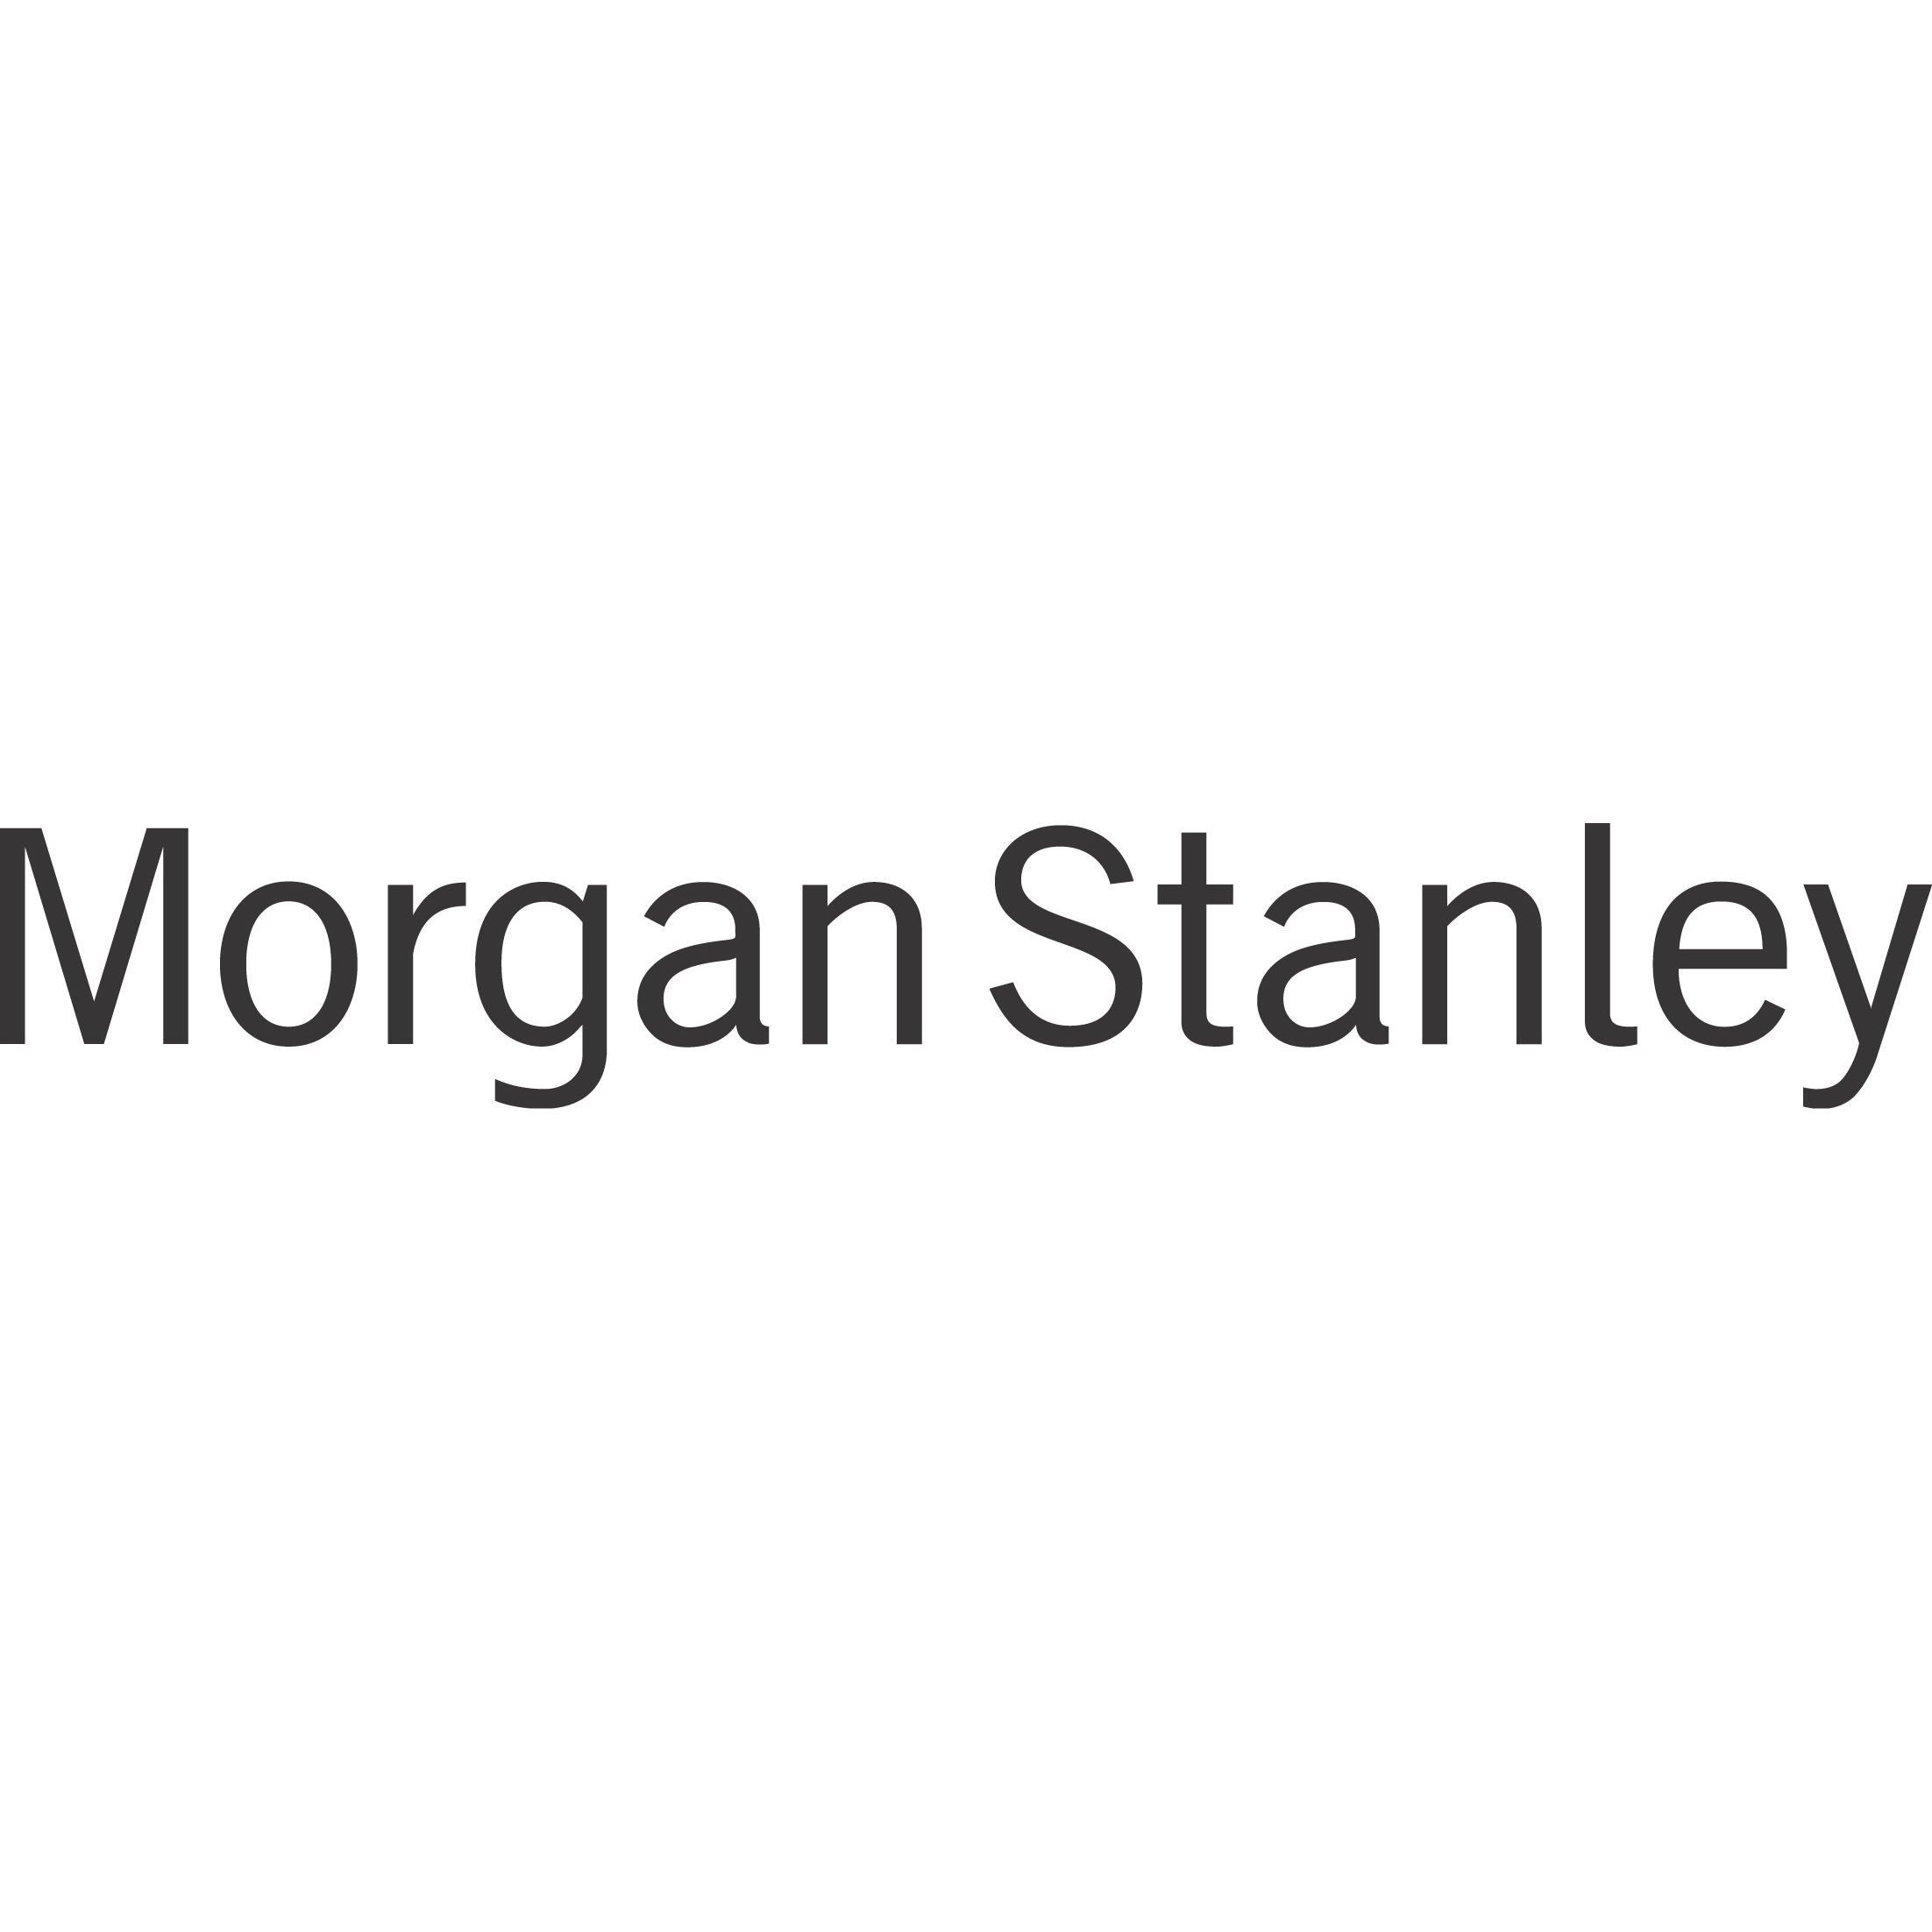 Jon Anderson - Morgan Stanley | Financial Advisor in Decatur,Alabama